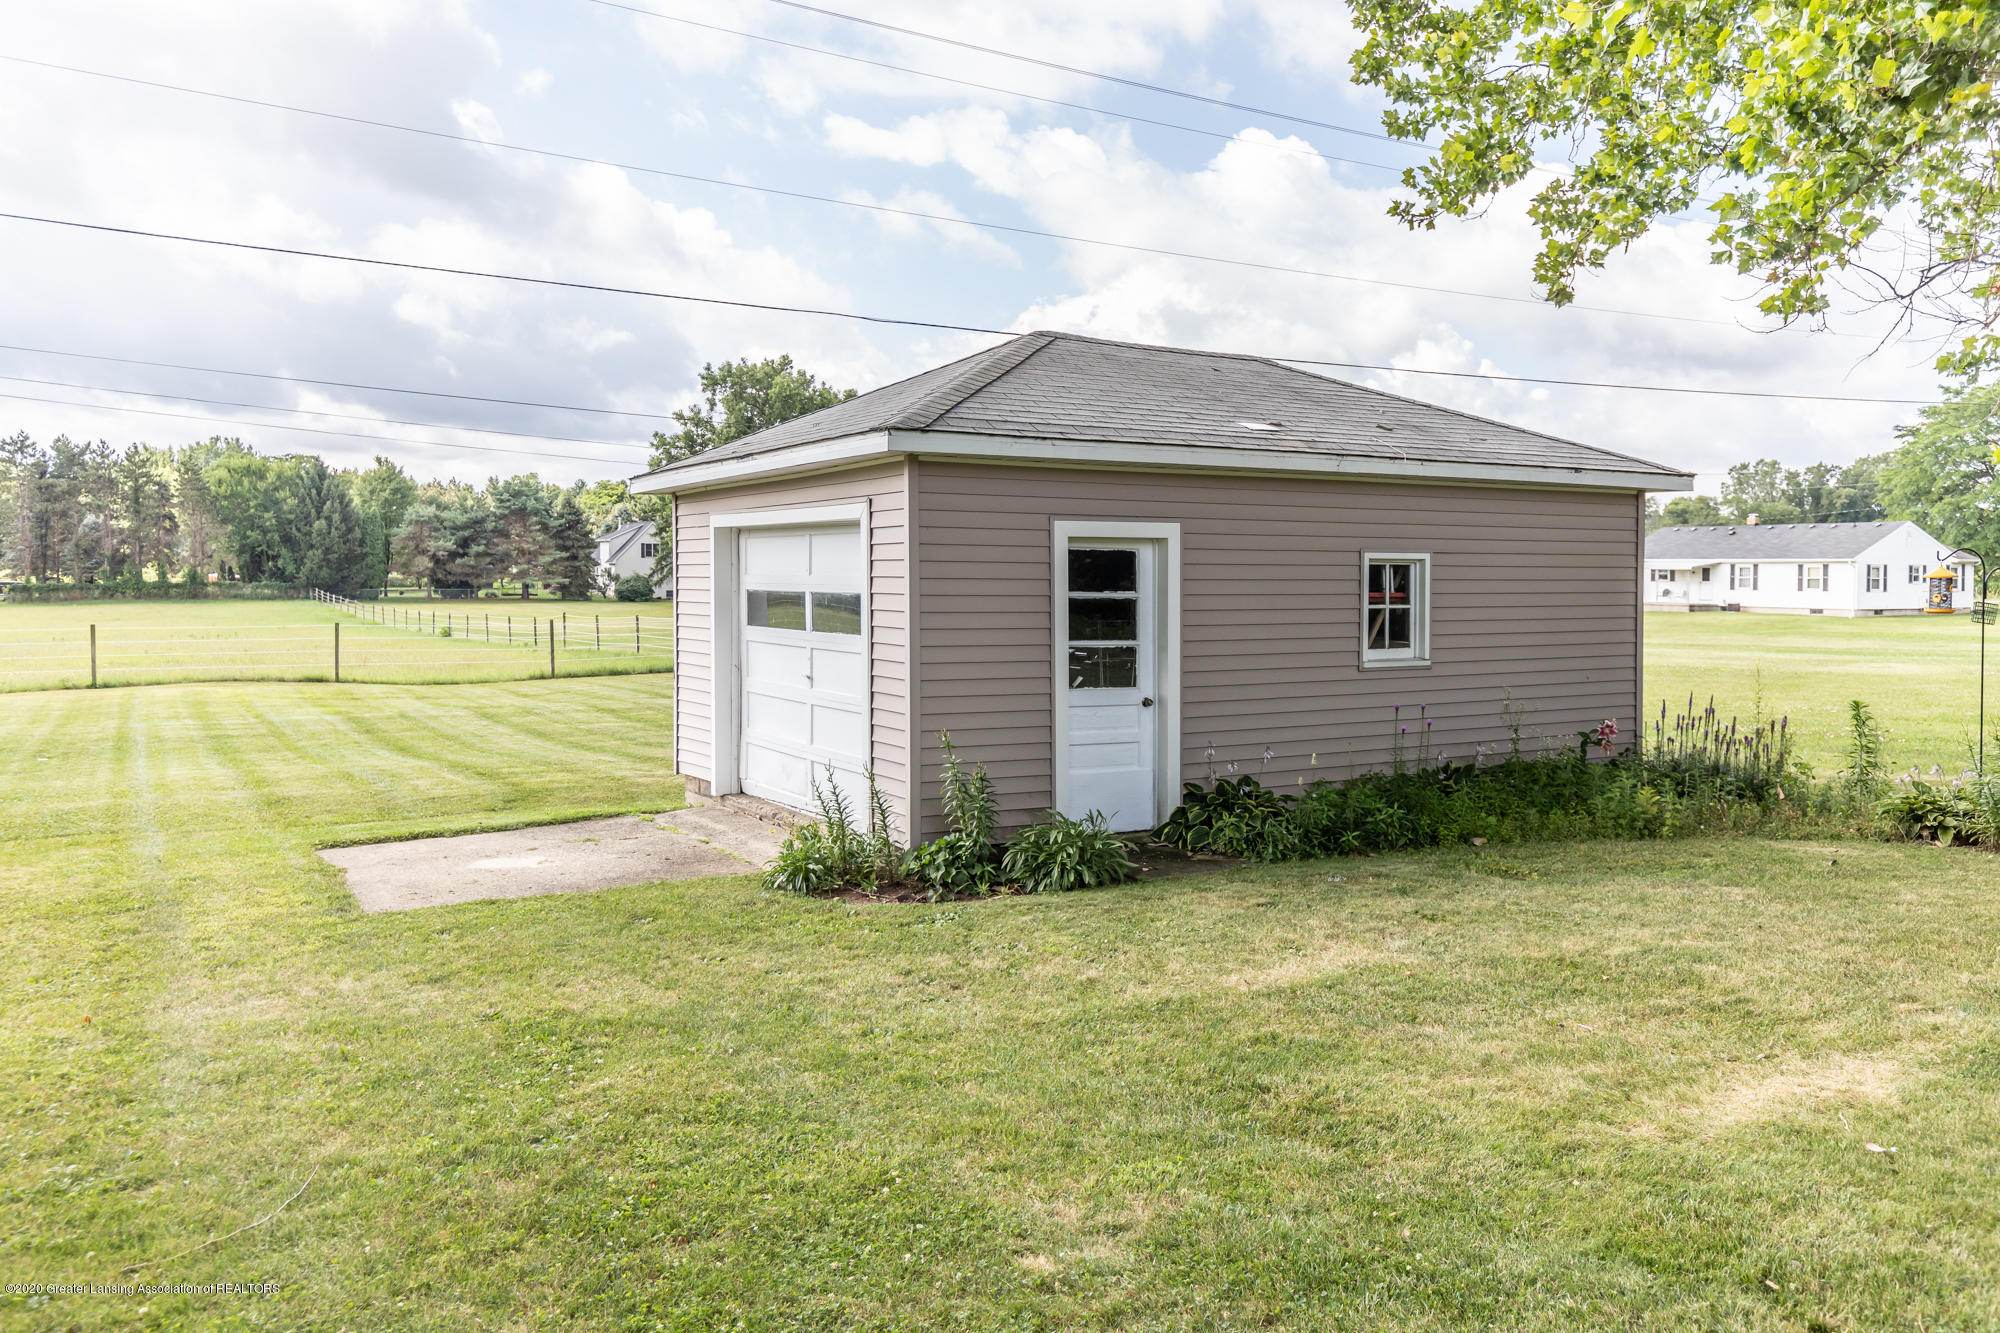 205 W Herbison Rd - Pole barn/shed - 36